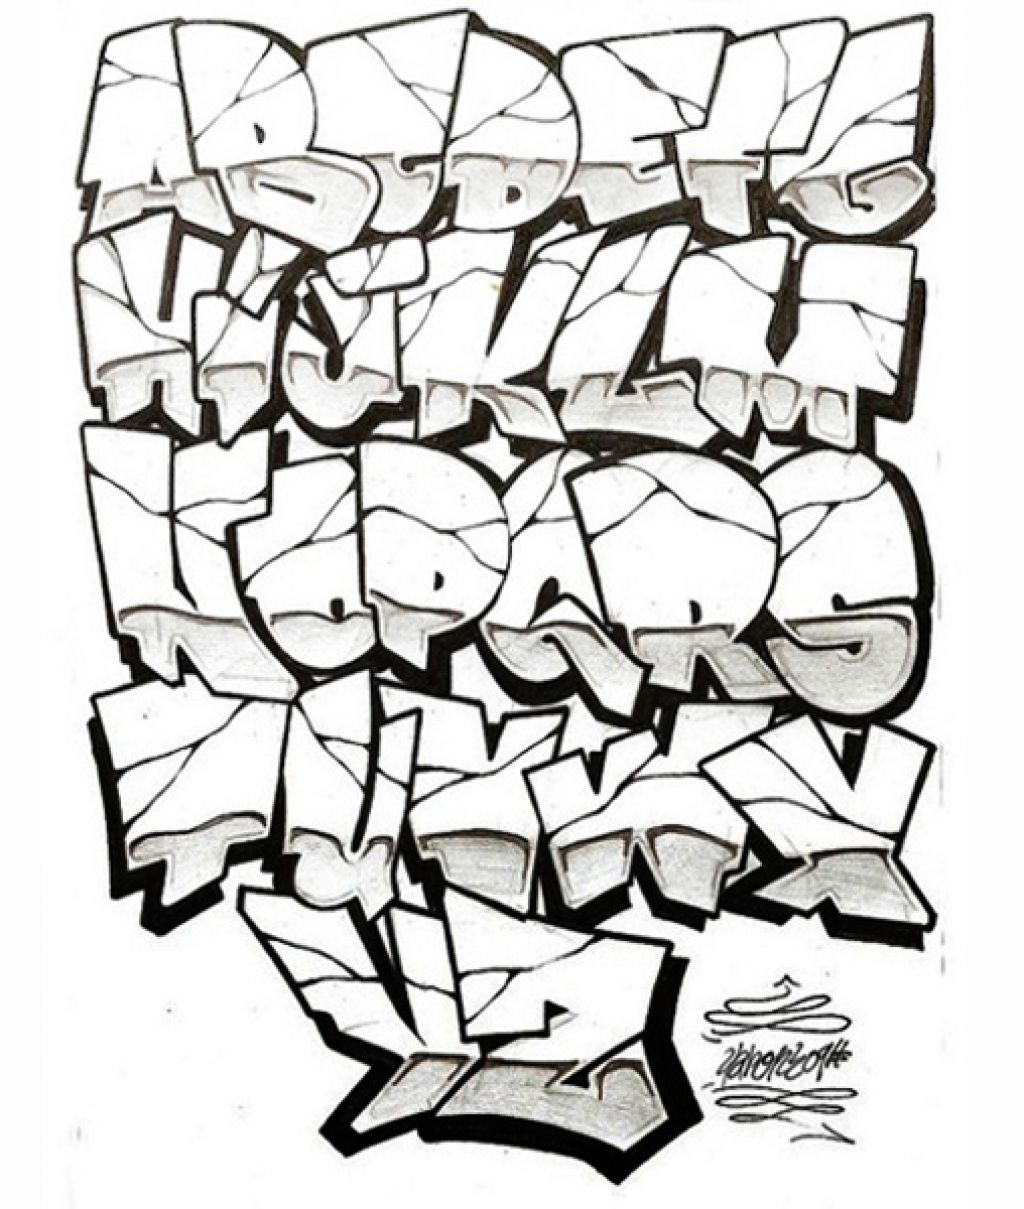 Cool Graffiti Styles and Ideas